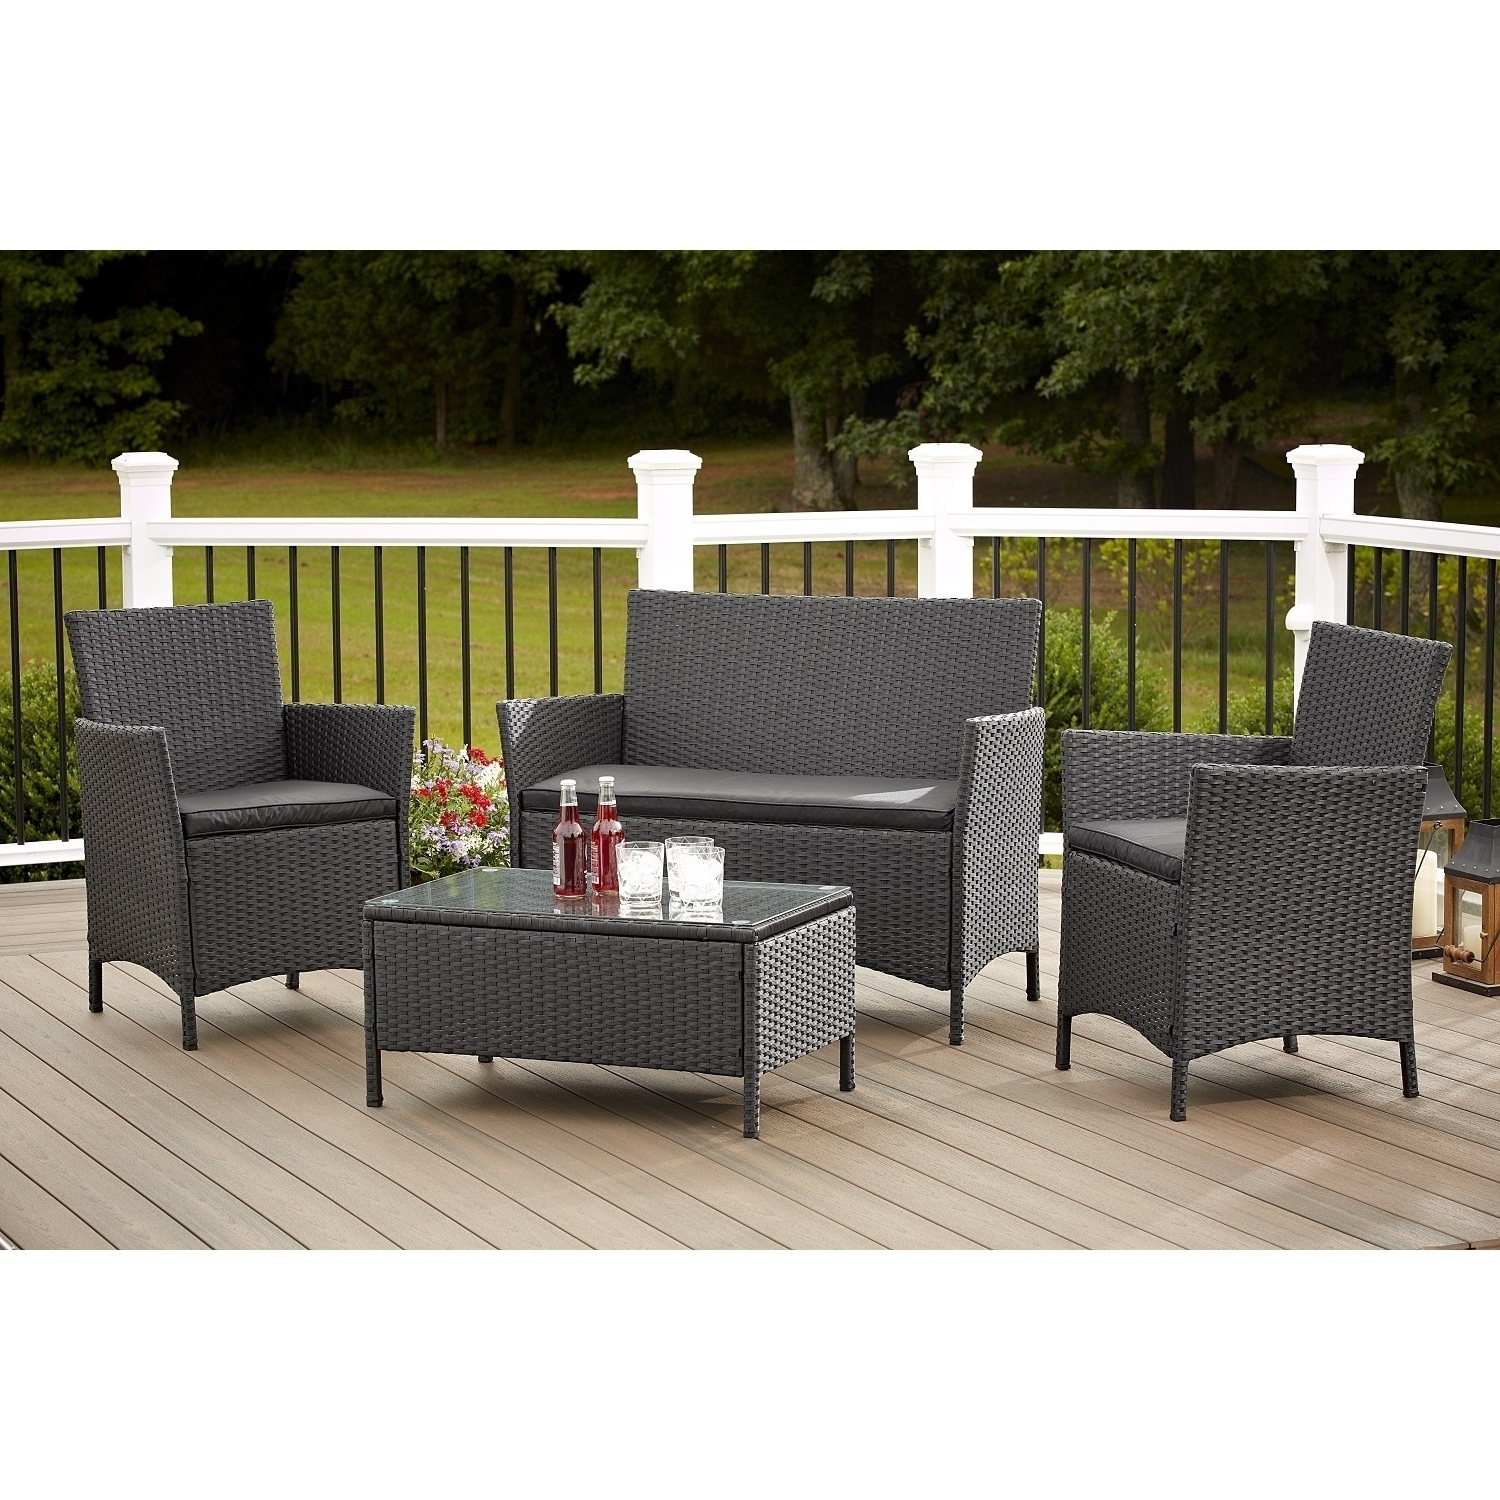 Widely Used Wicker 4Pc Patio Conversation Sets With Navy Cushions Throughout Shop Avenue Greene 4 Piece Resin Wicker Deep Seating Patio (View 7 of 15)